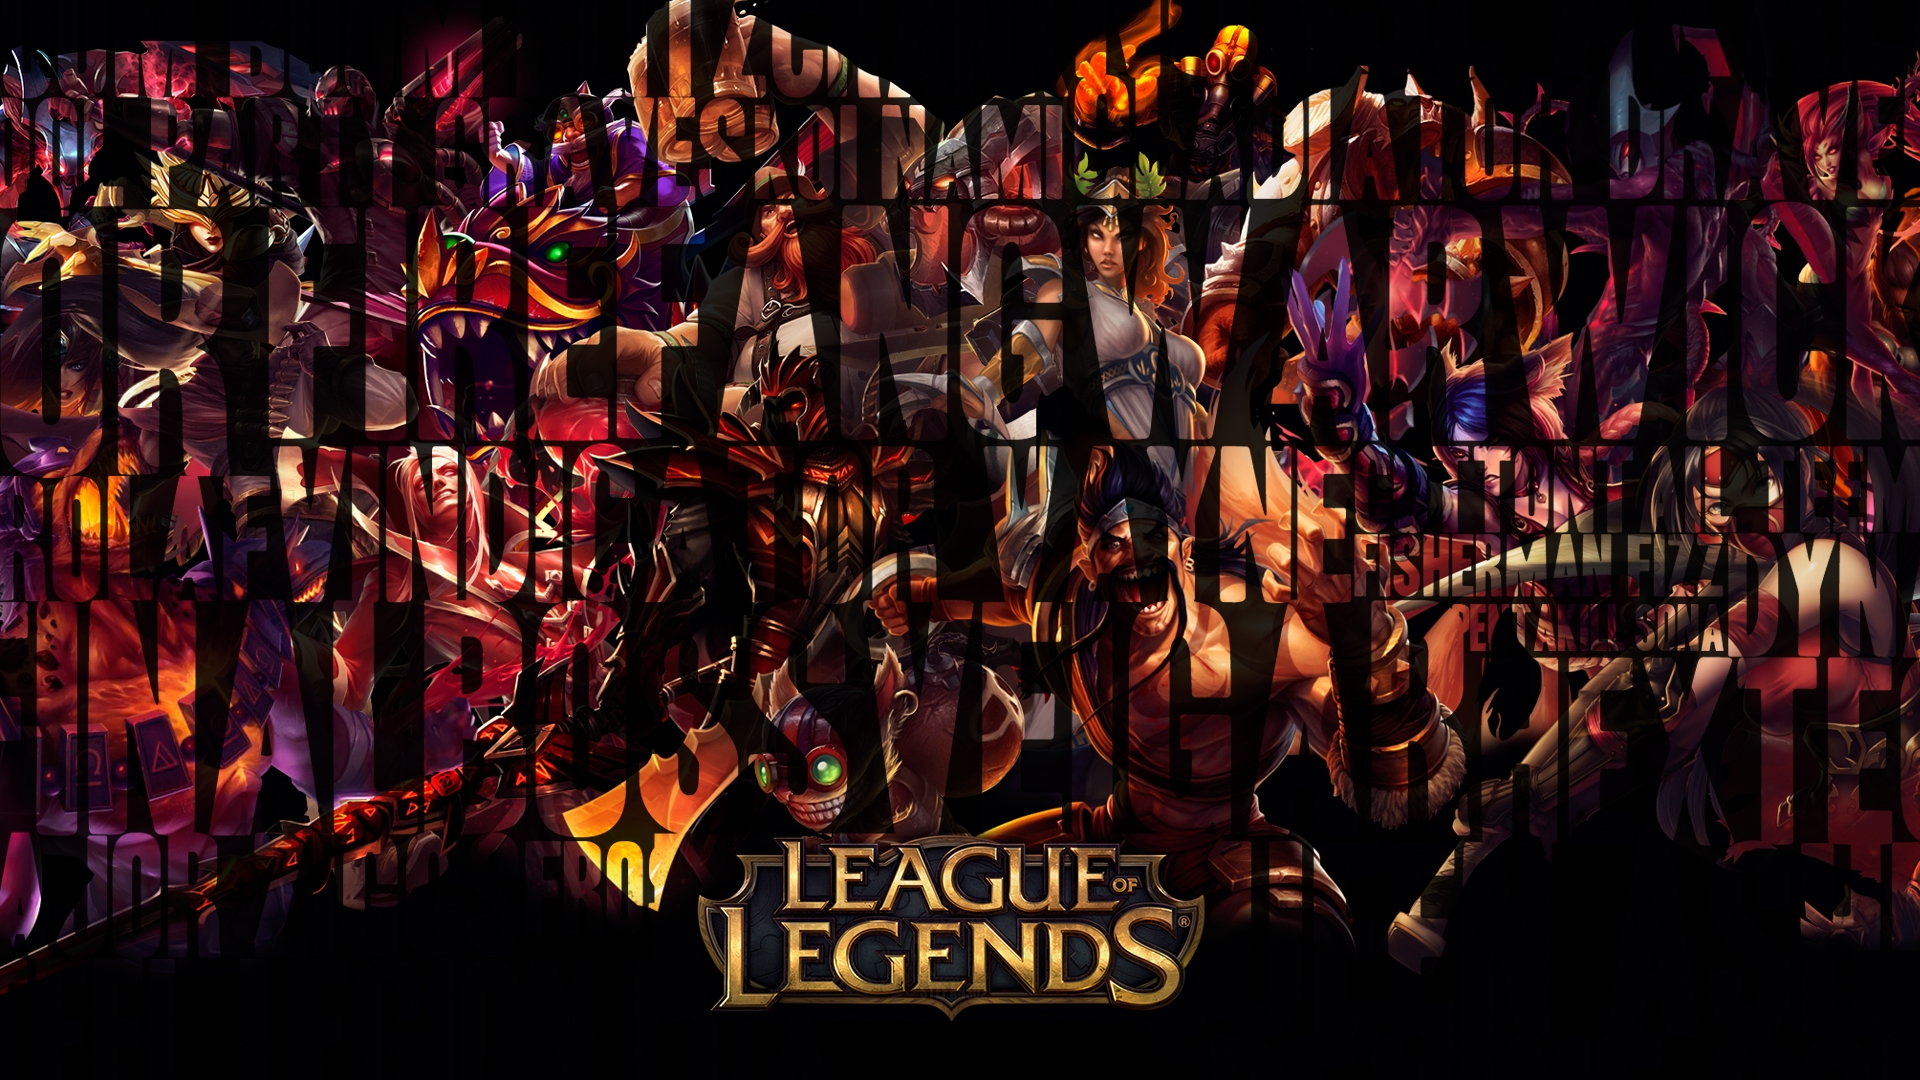 league of legends hd photos